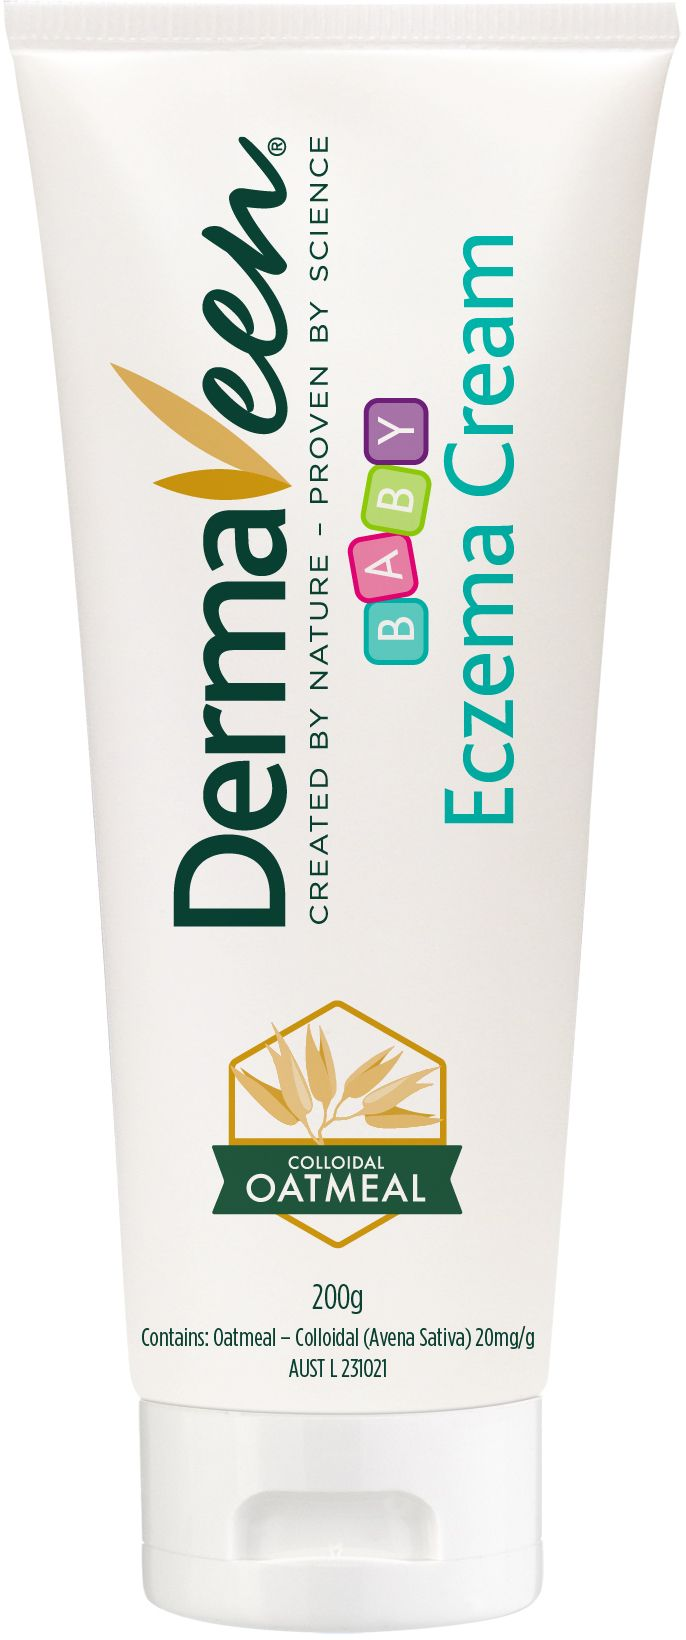 DermaVeen Baby Eczema Cream is a cream that offers symptomatic relief of mild eczema. It helps relieve itch and irritation; rehydrates, moisturises and helps pro...